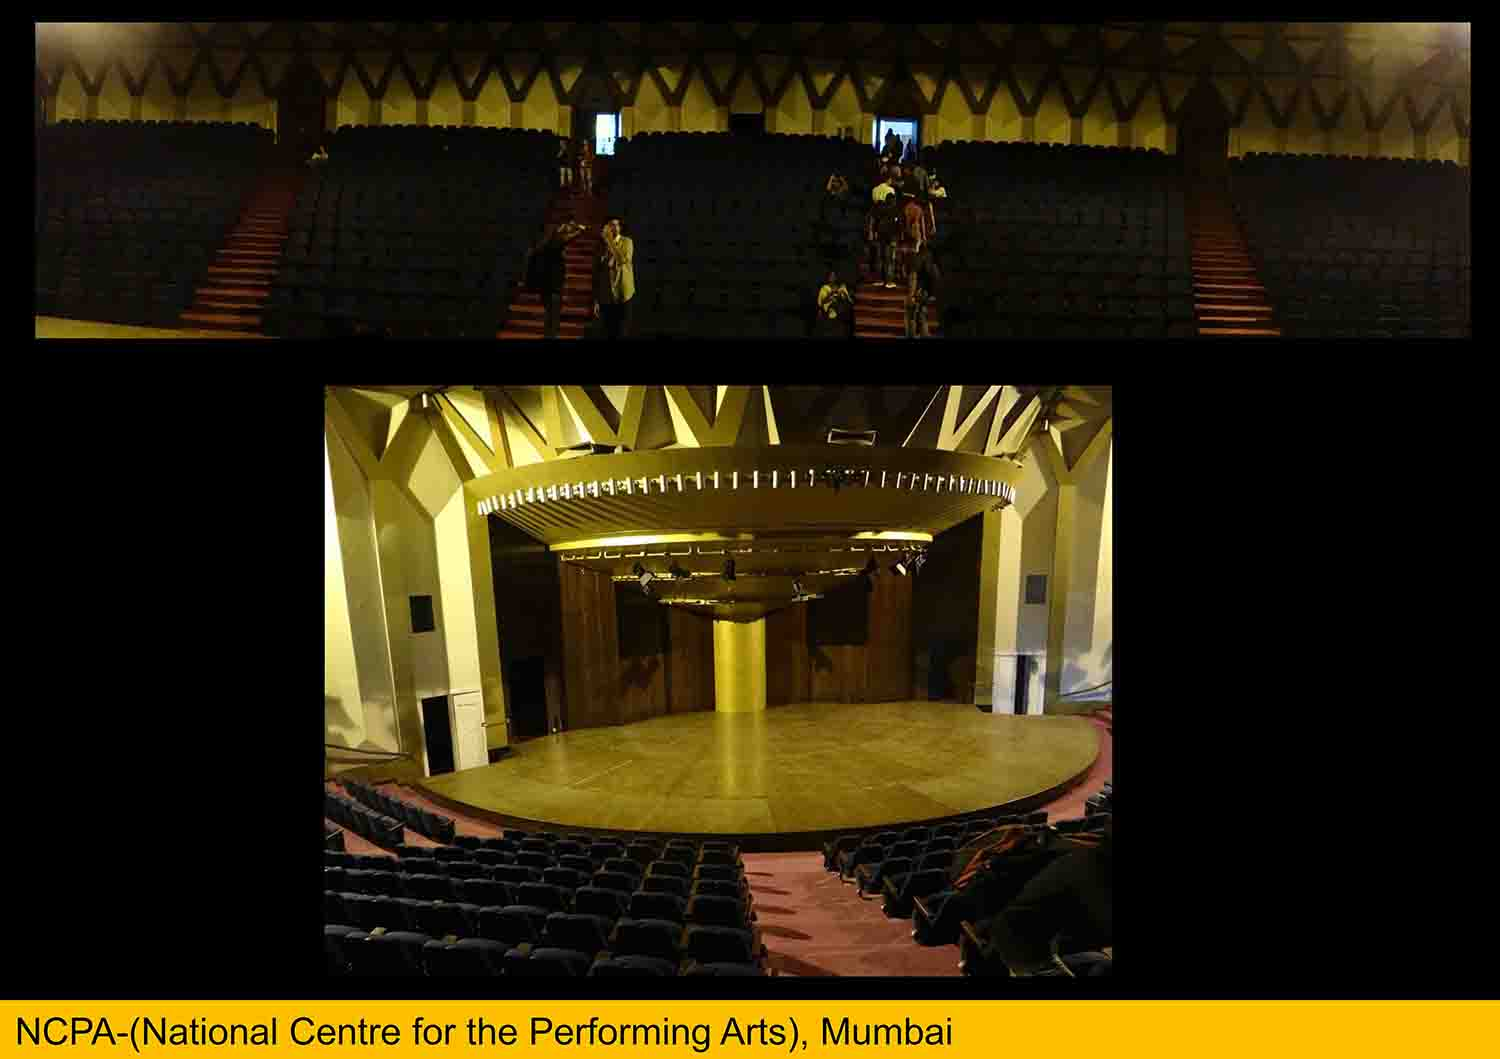 ncpa-stage-view